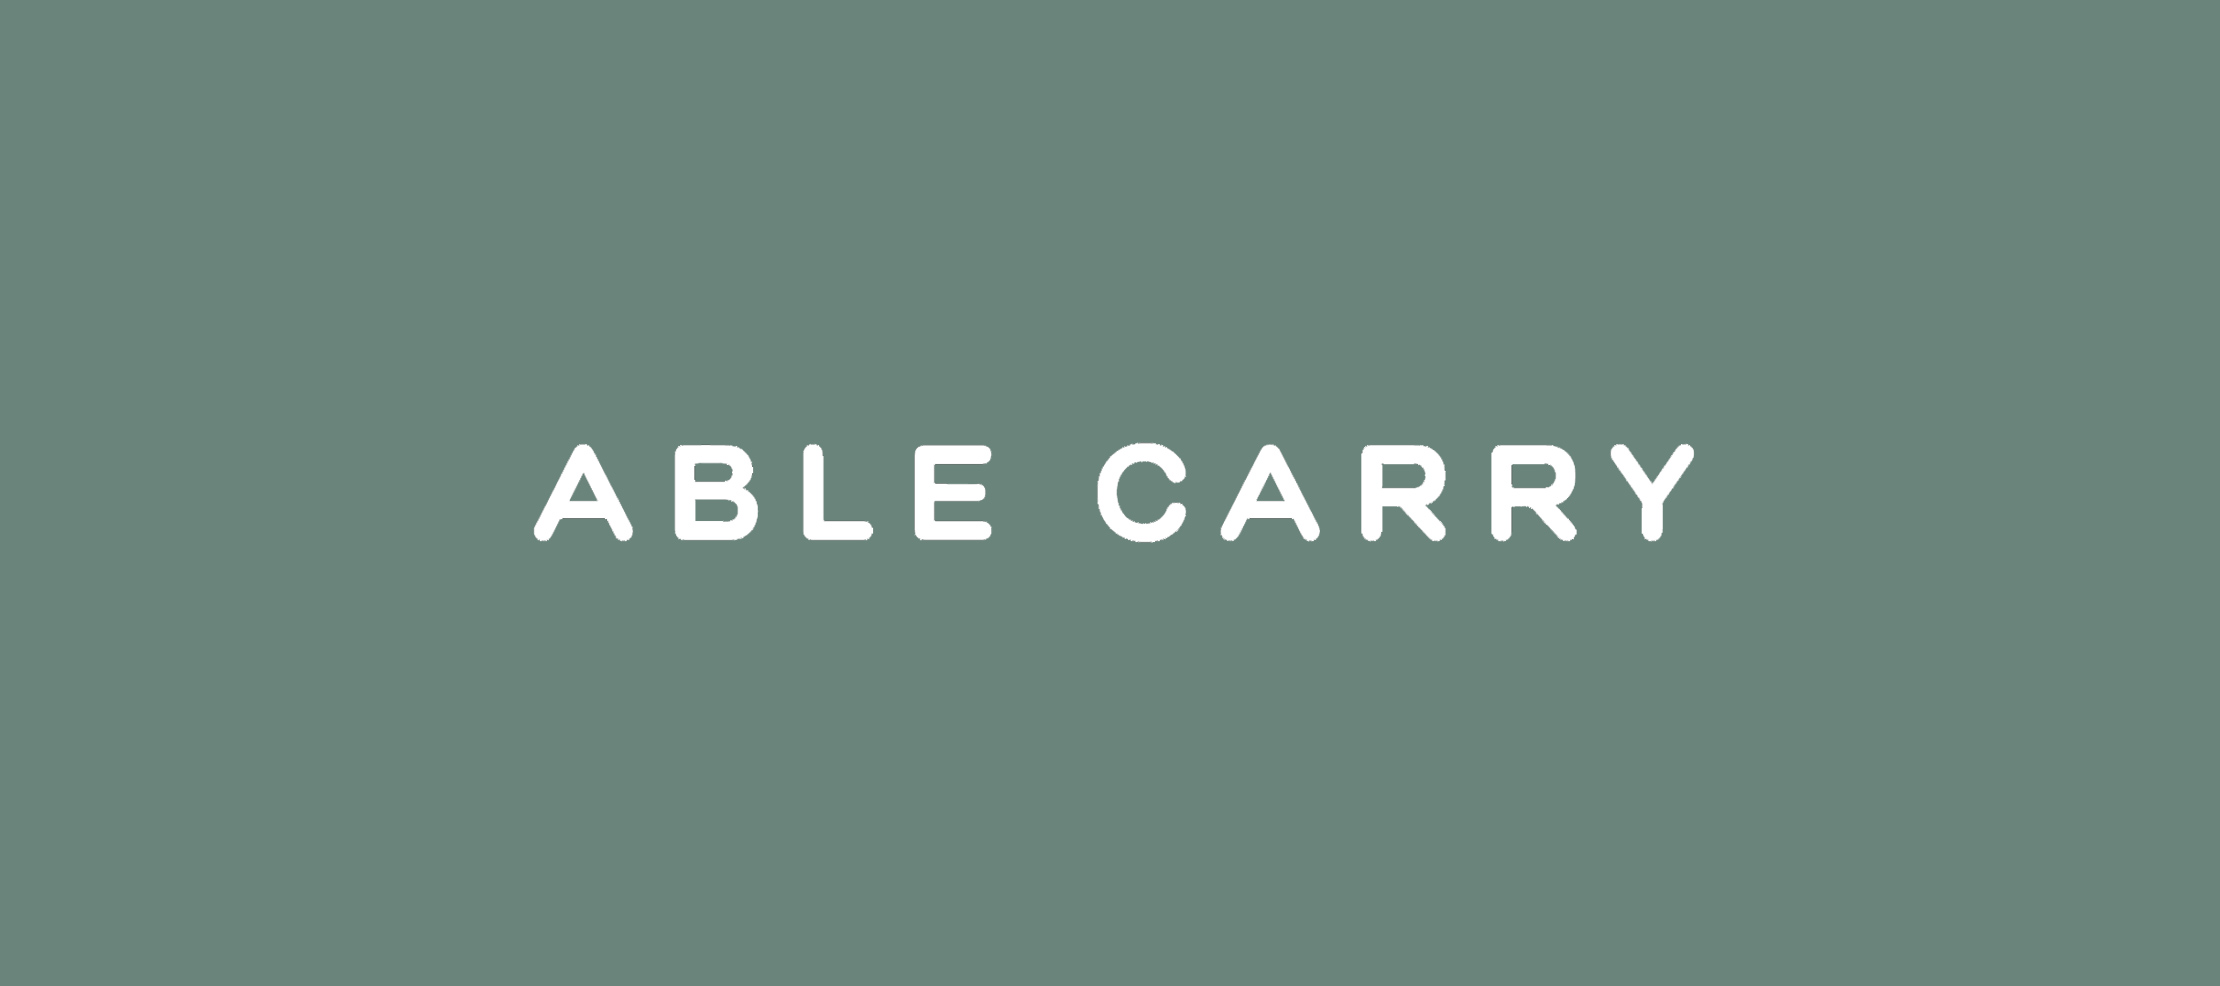 Able Carry Logo